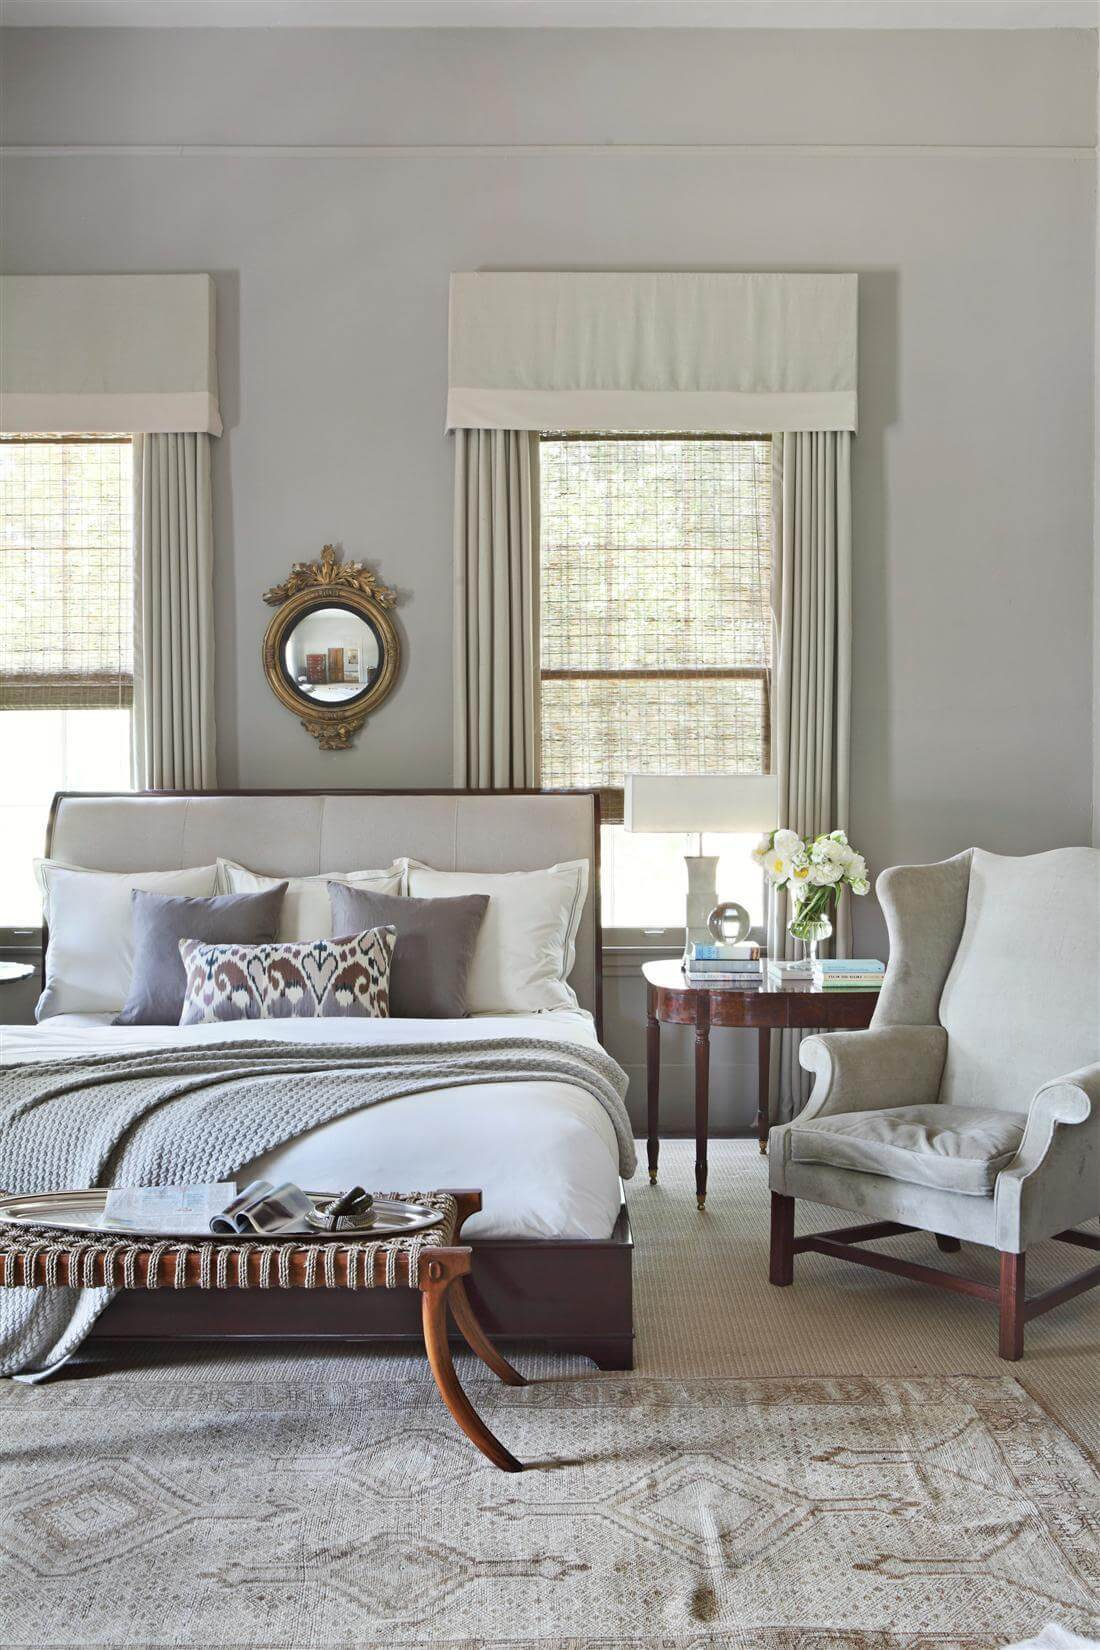 The master bedroom includes an upholstered sleigh bed, antique Georgian wing chair, saber leg ottoman by Formations, a bullseye mirror and an antique rug from Paige Albright Orientals. Image William Abranowicz